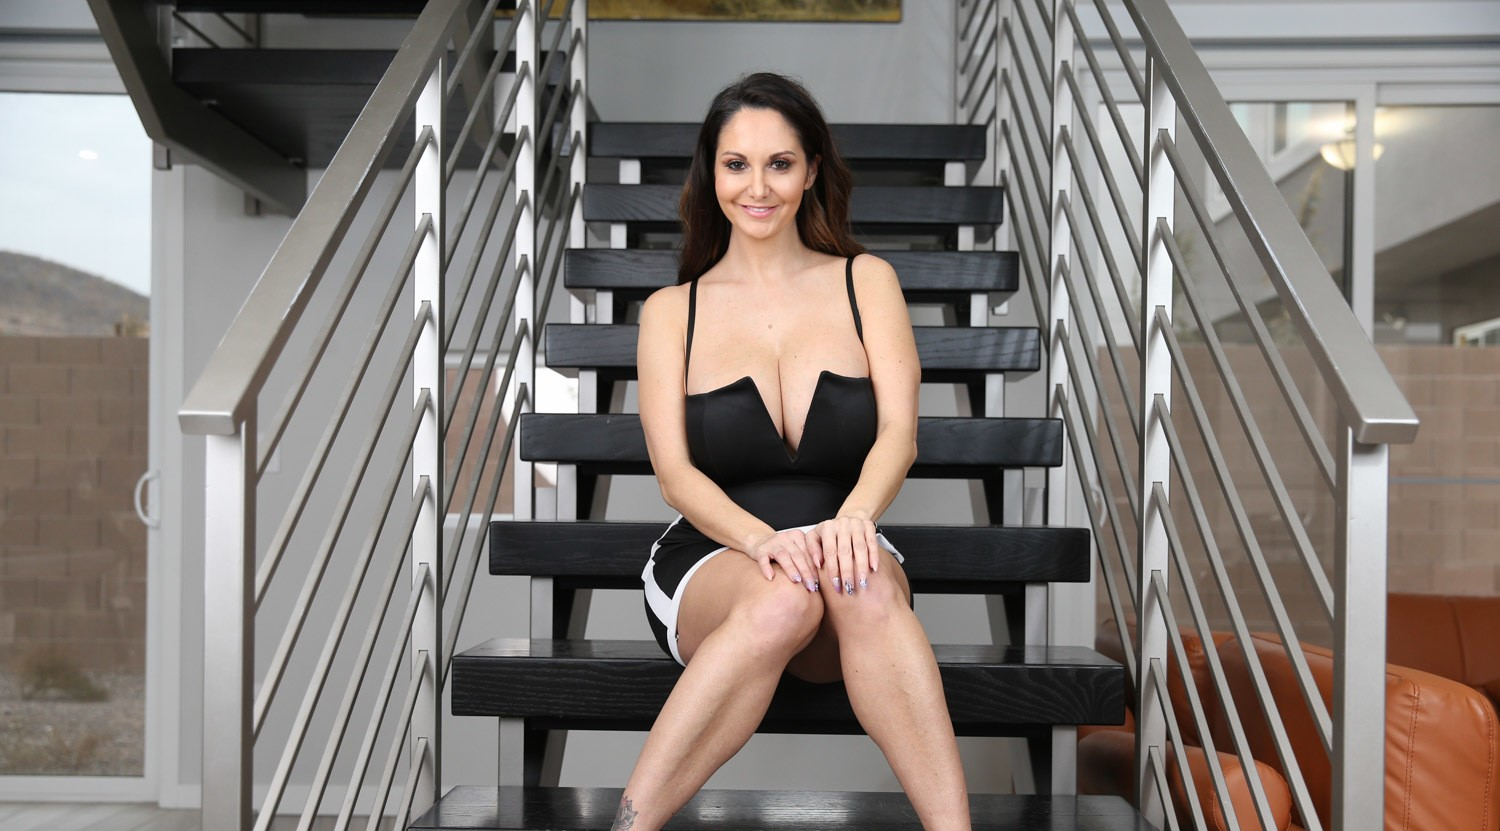 Ava Addams on the stairs